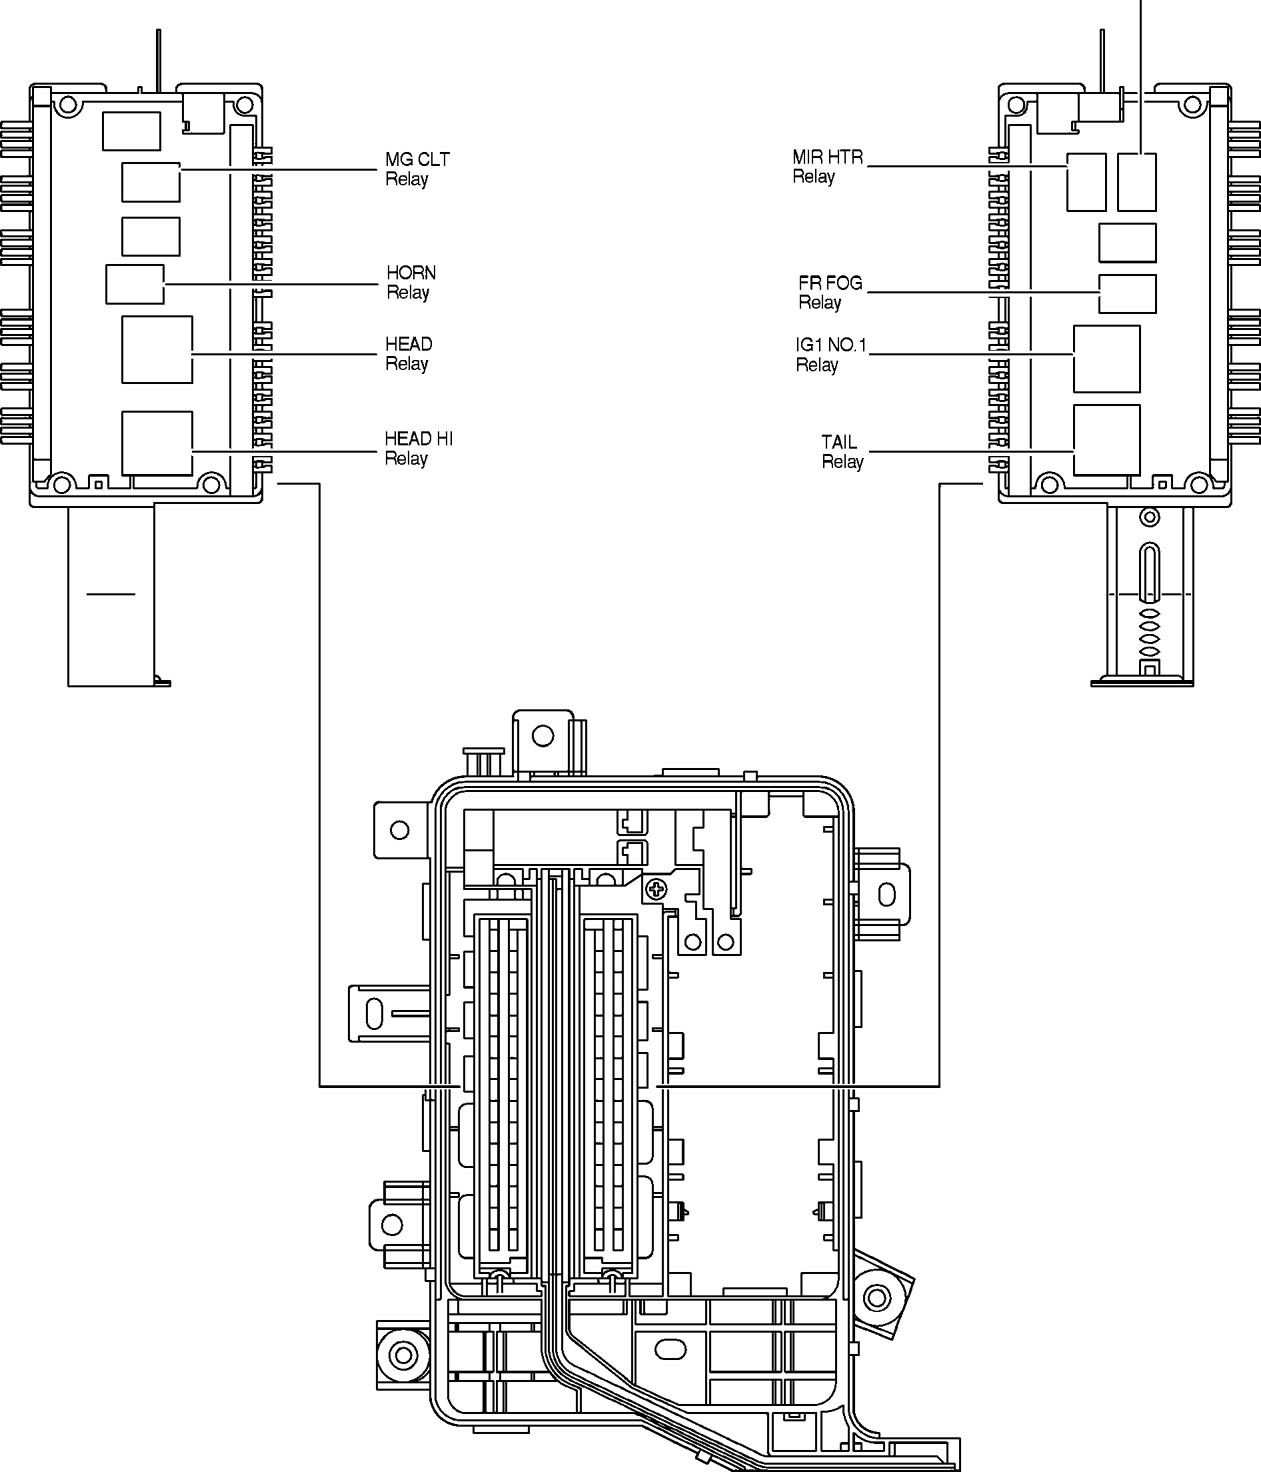 94 Toyota Previa Engine Diagram. Toyota. Auto Wiring Diagram